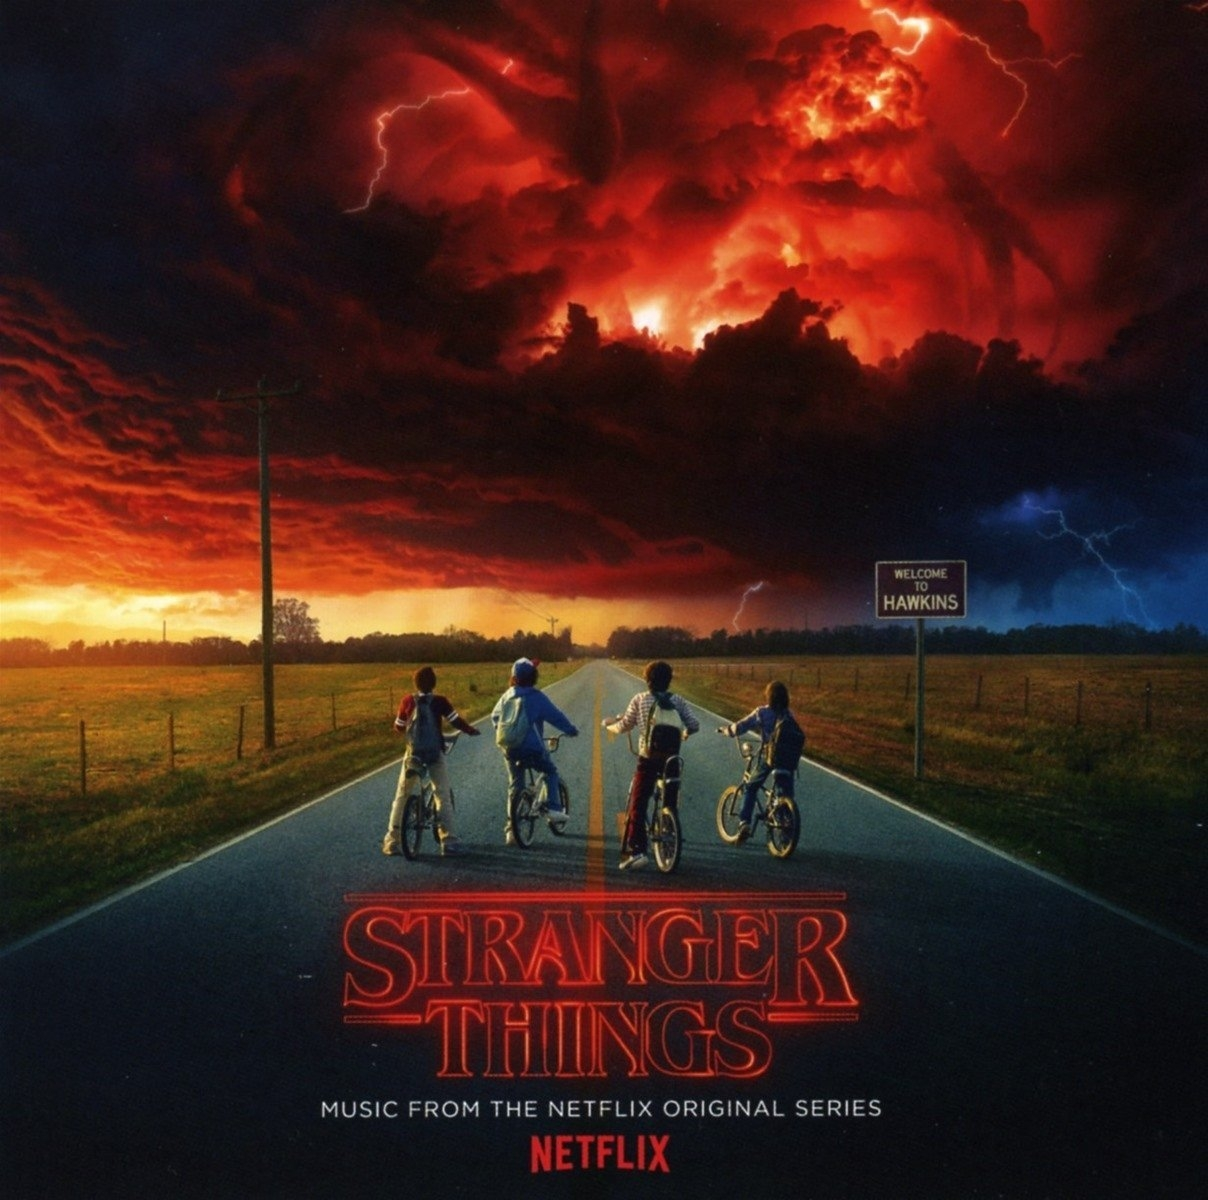 ost 02 18 Stranger Things